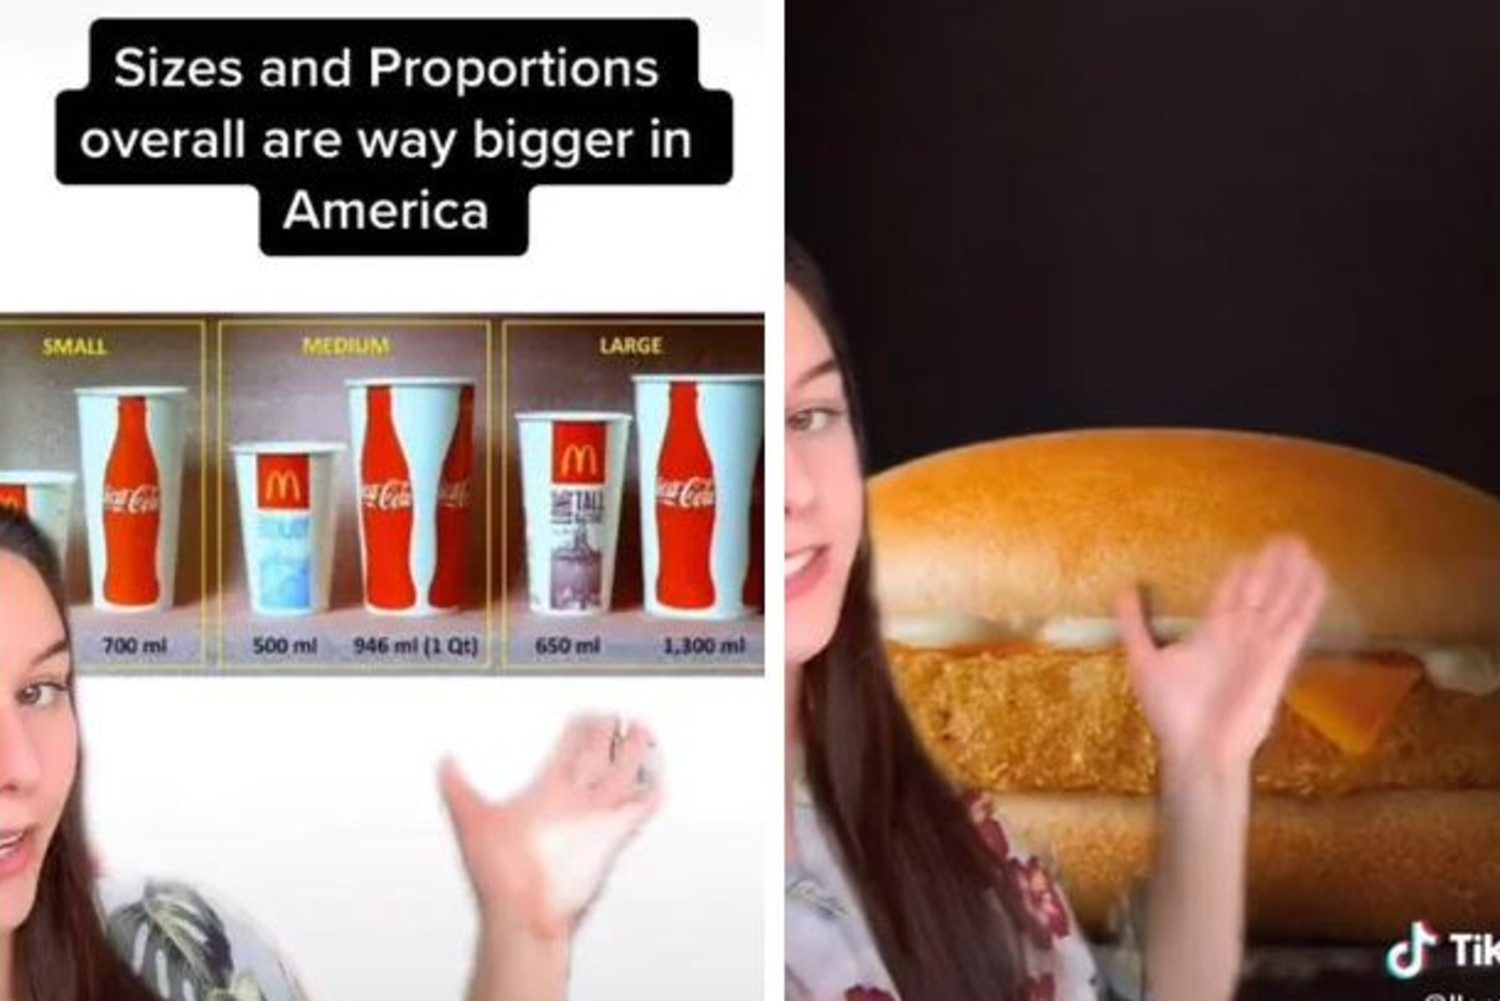 She previously shared differences between the US McDonald's and Australia's Macca's. Picture: TikTok/llarafourie